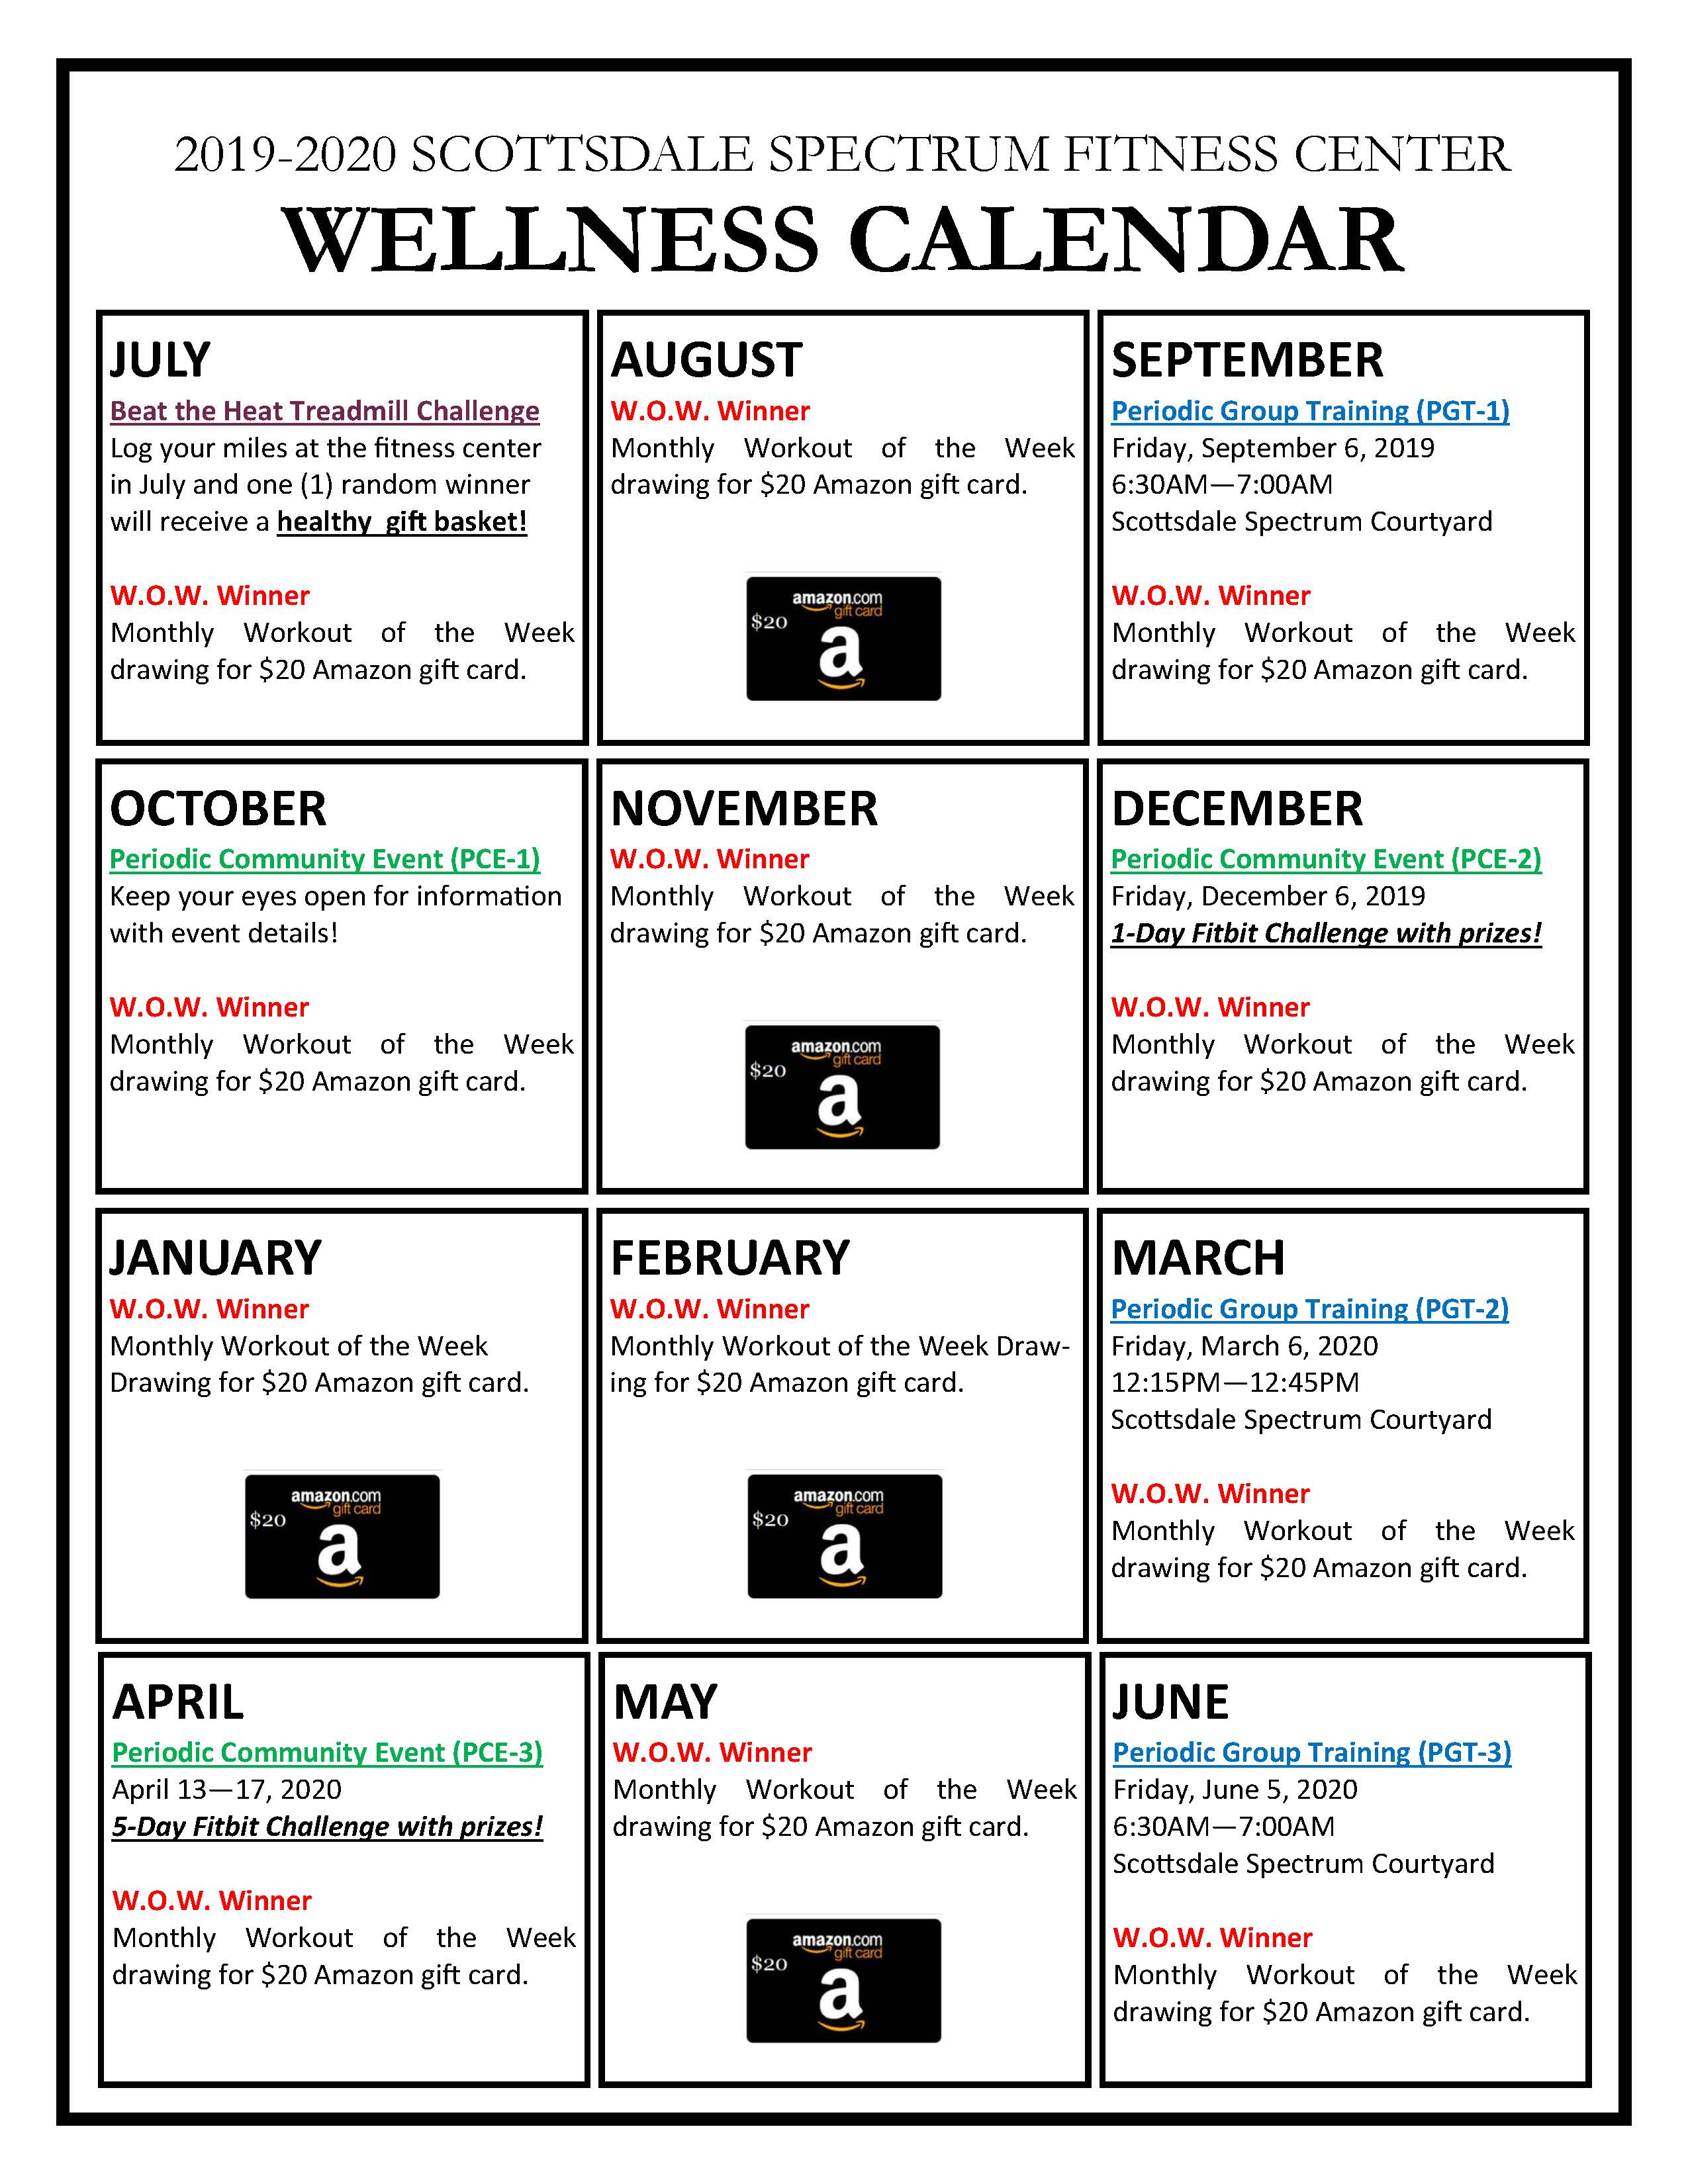 2019-2020 Calendar of Events DDWC_Page_2